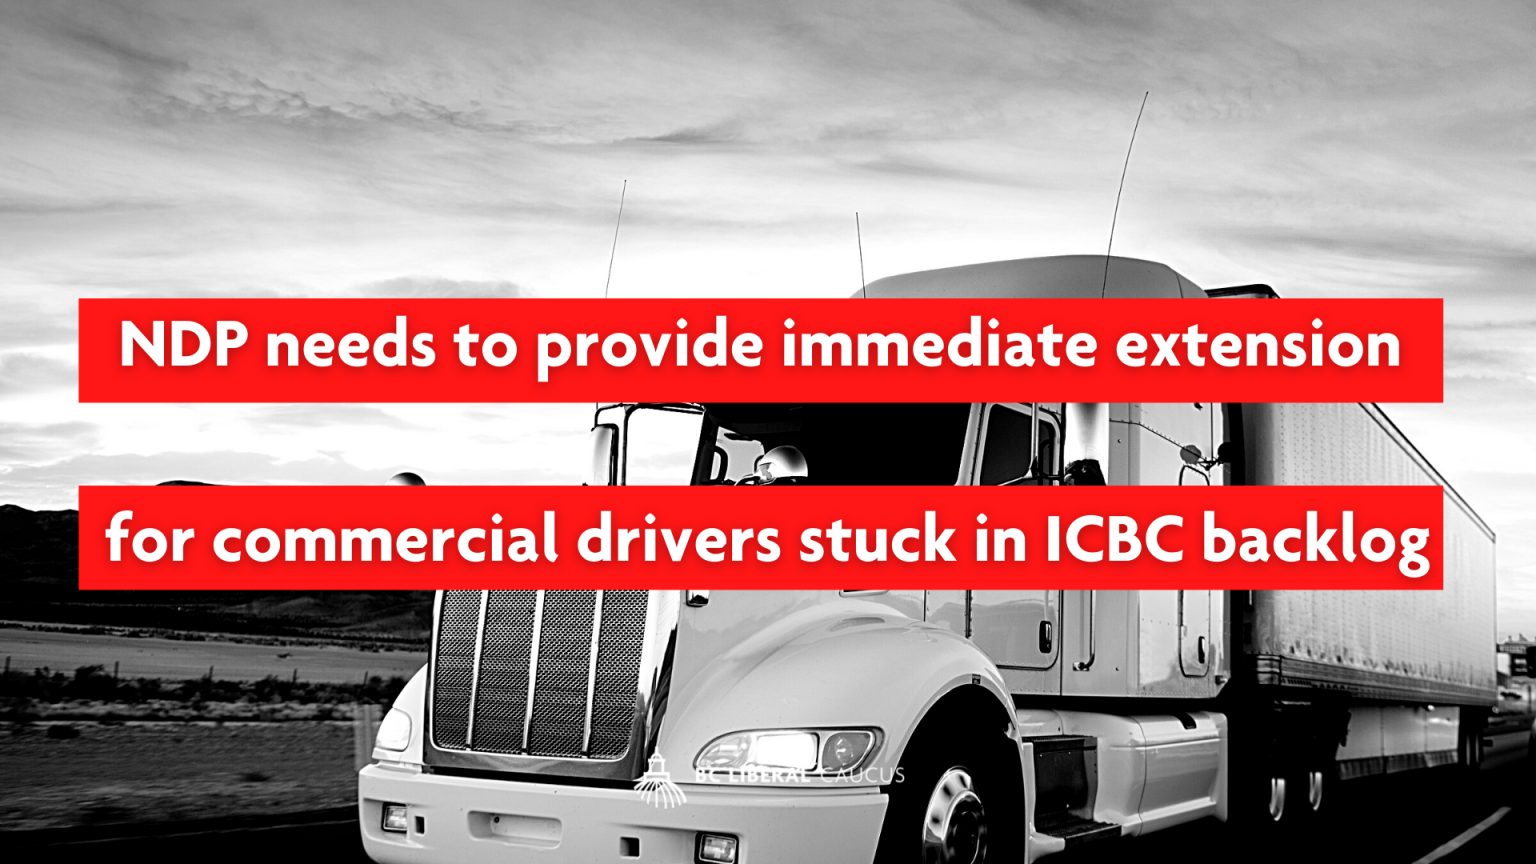 NDP needs to provide immediate extension for commercial drivers stuck in ICBC backlog